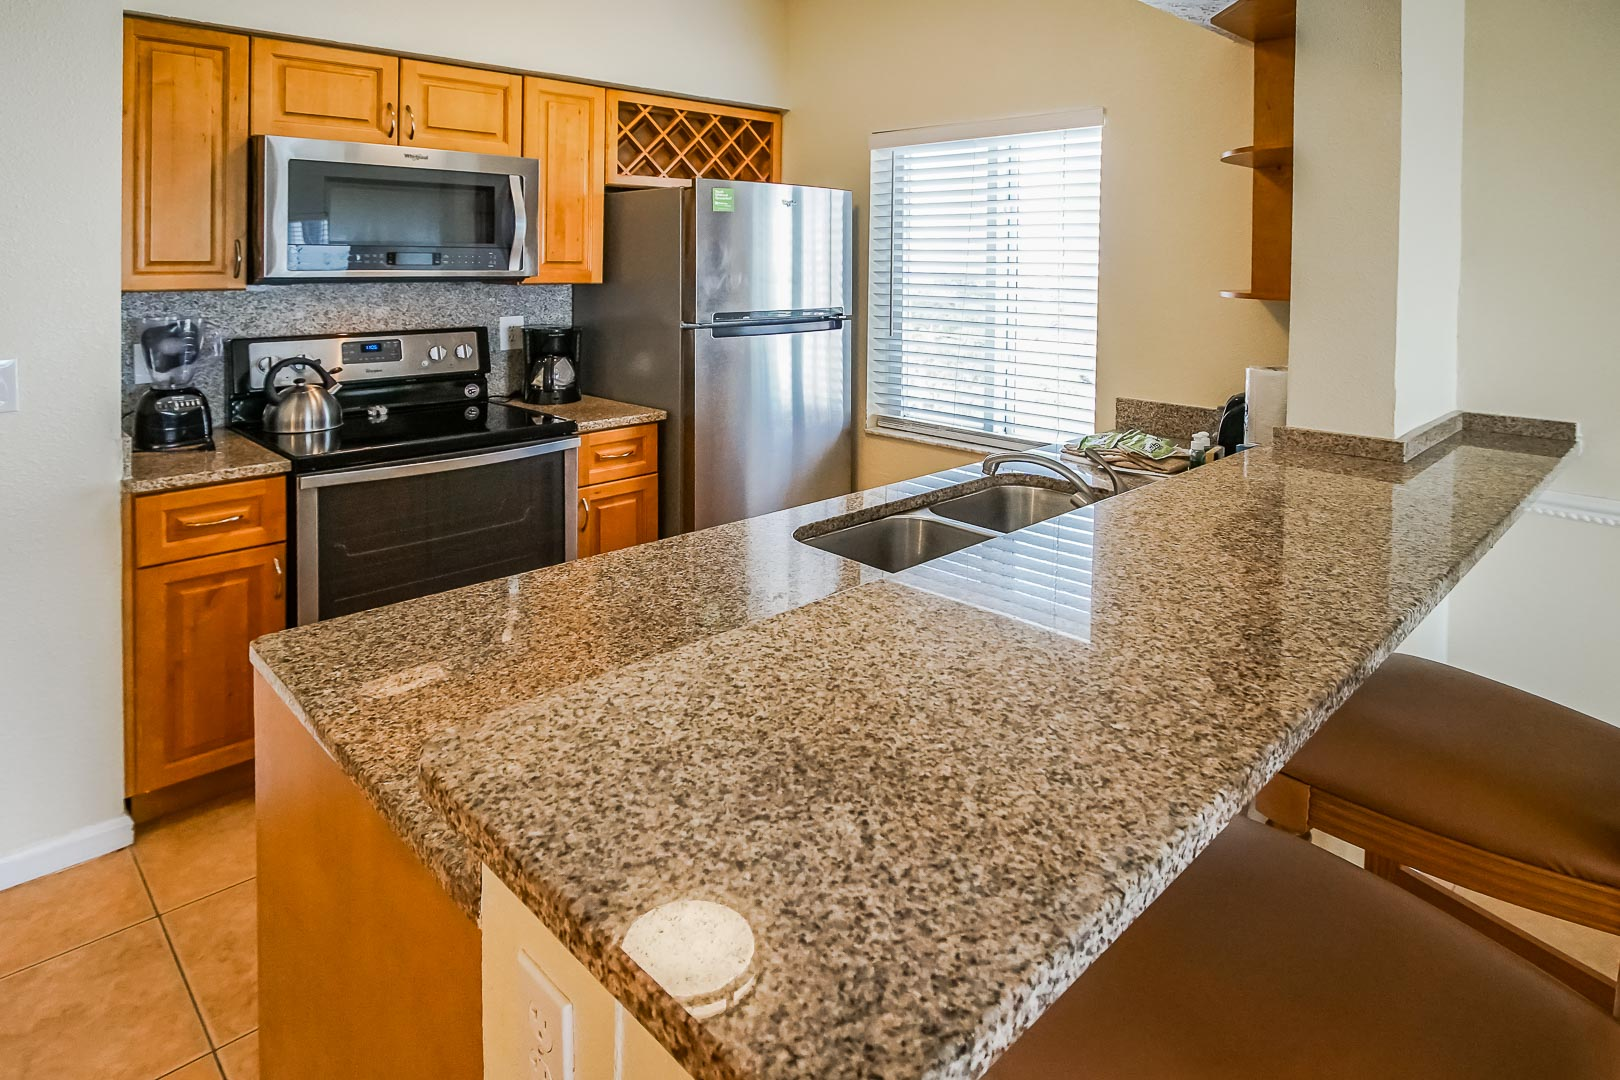 A fully renovated kitchen at VRI's Discovery Beach Resort in Cocoa Beach, Florida.